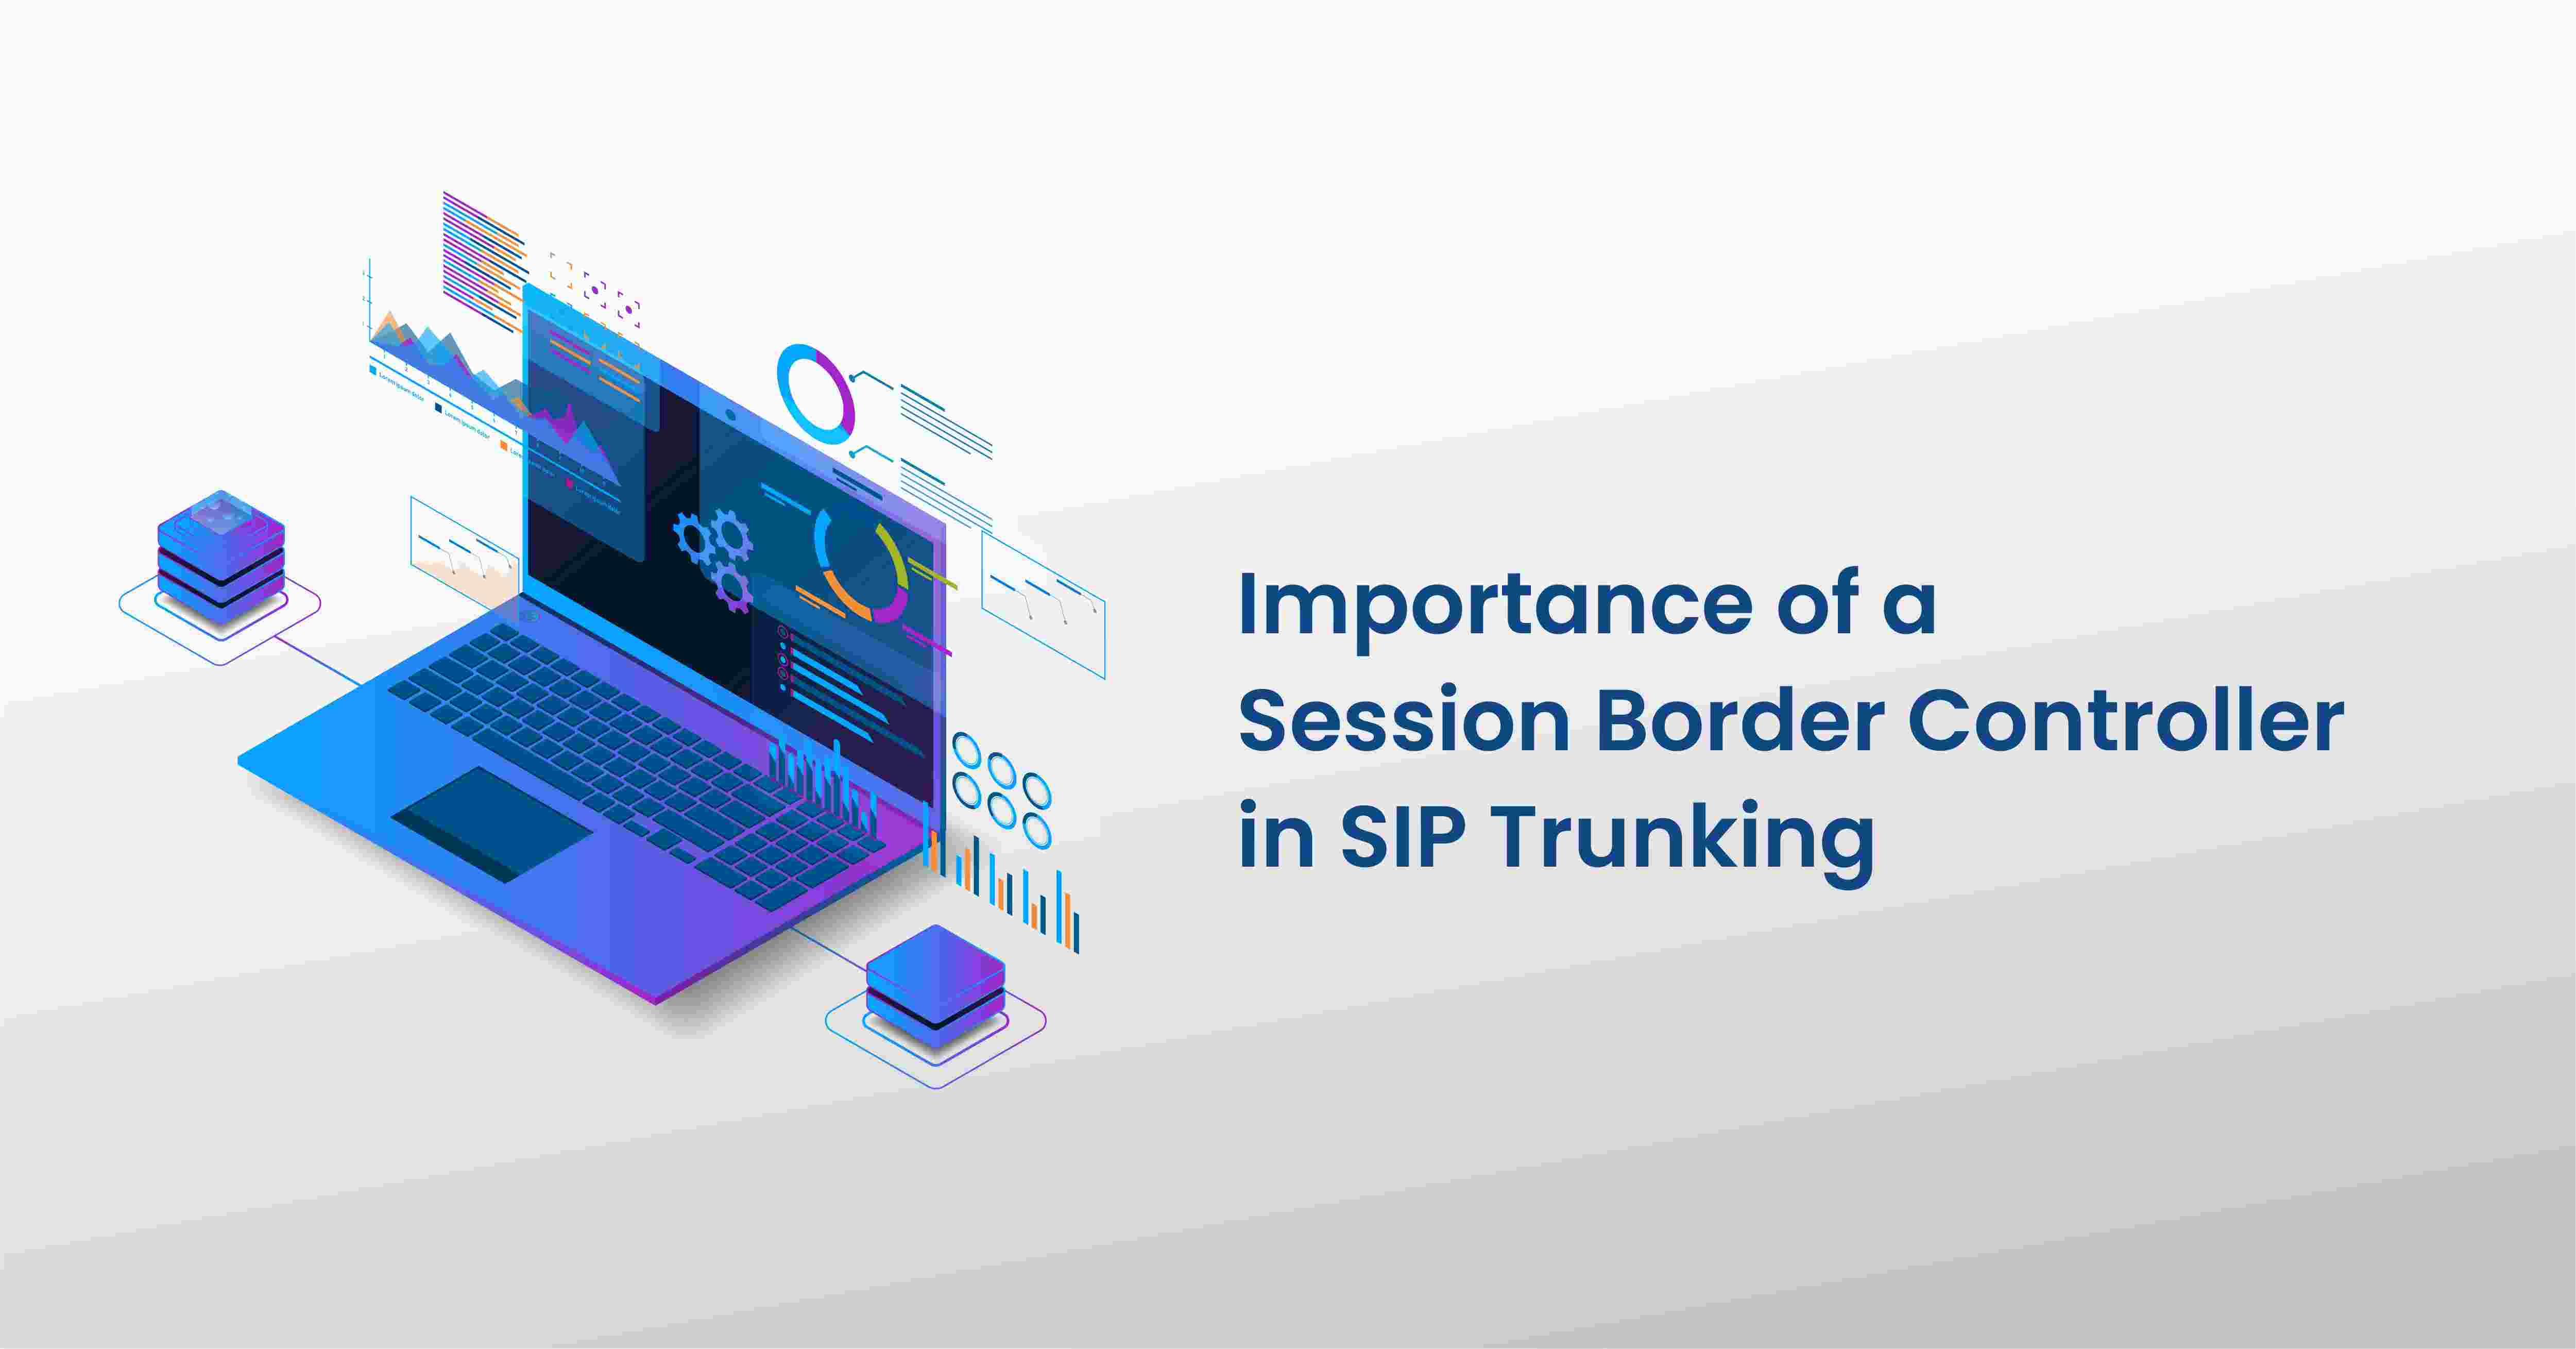 Importance of a Session Border Controller in SIP Trunking